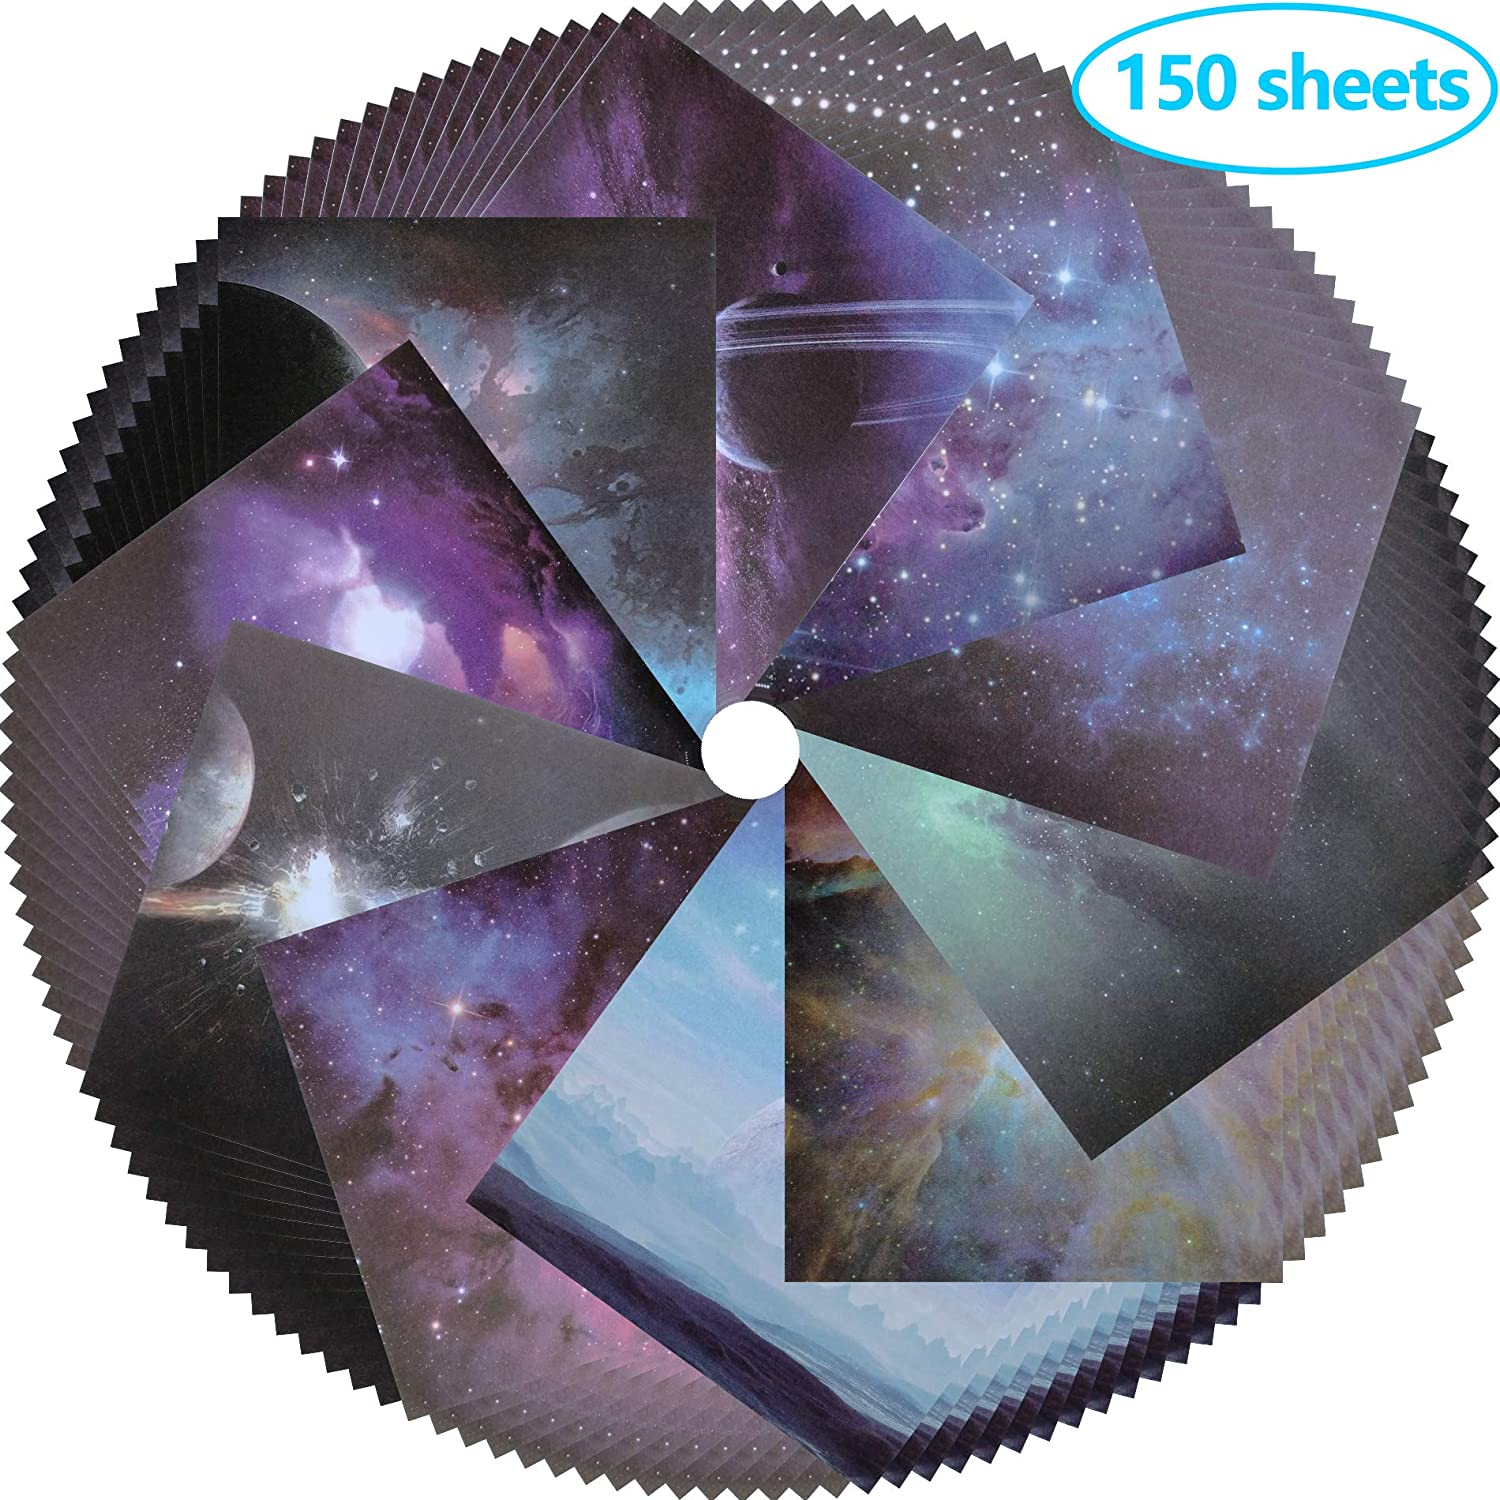 10 Different Patterns 150 Sheets Origami Paper Starry Sky Square Folding Paper for Arts and Crafts, 6x6inch Frontoper